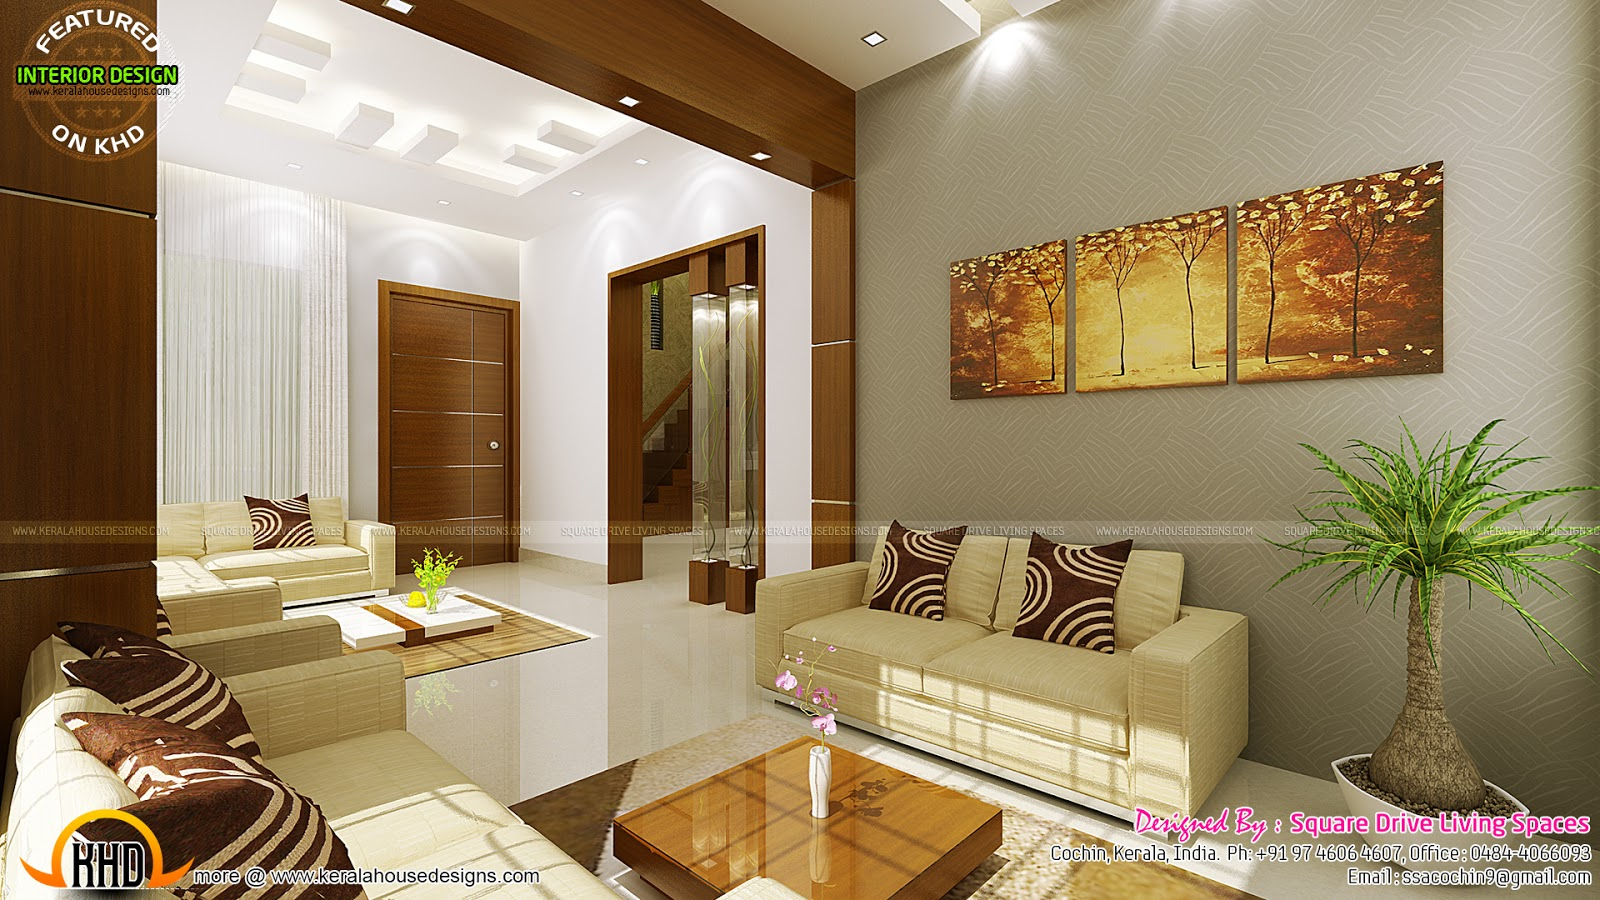 Interior Design Ideas Kitchen Dining ~ Contemporary kitchen dining and living room kerala home